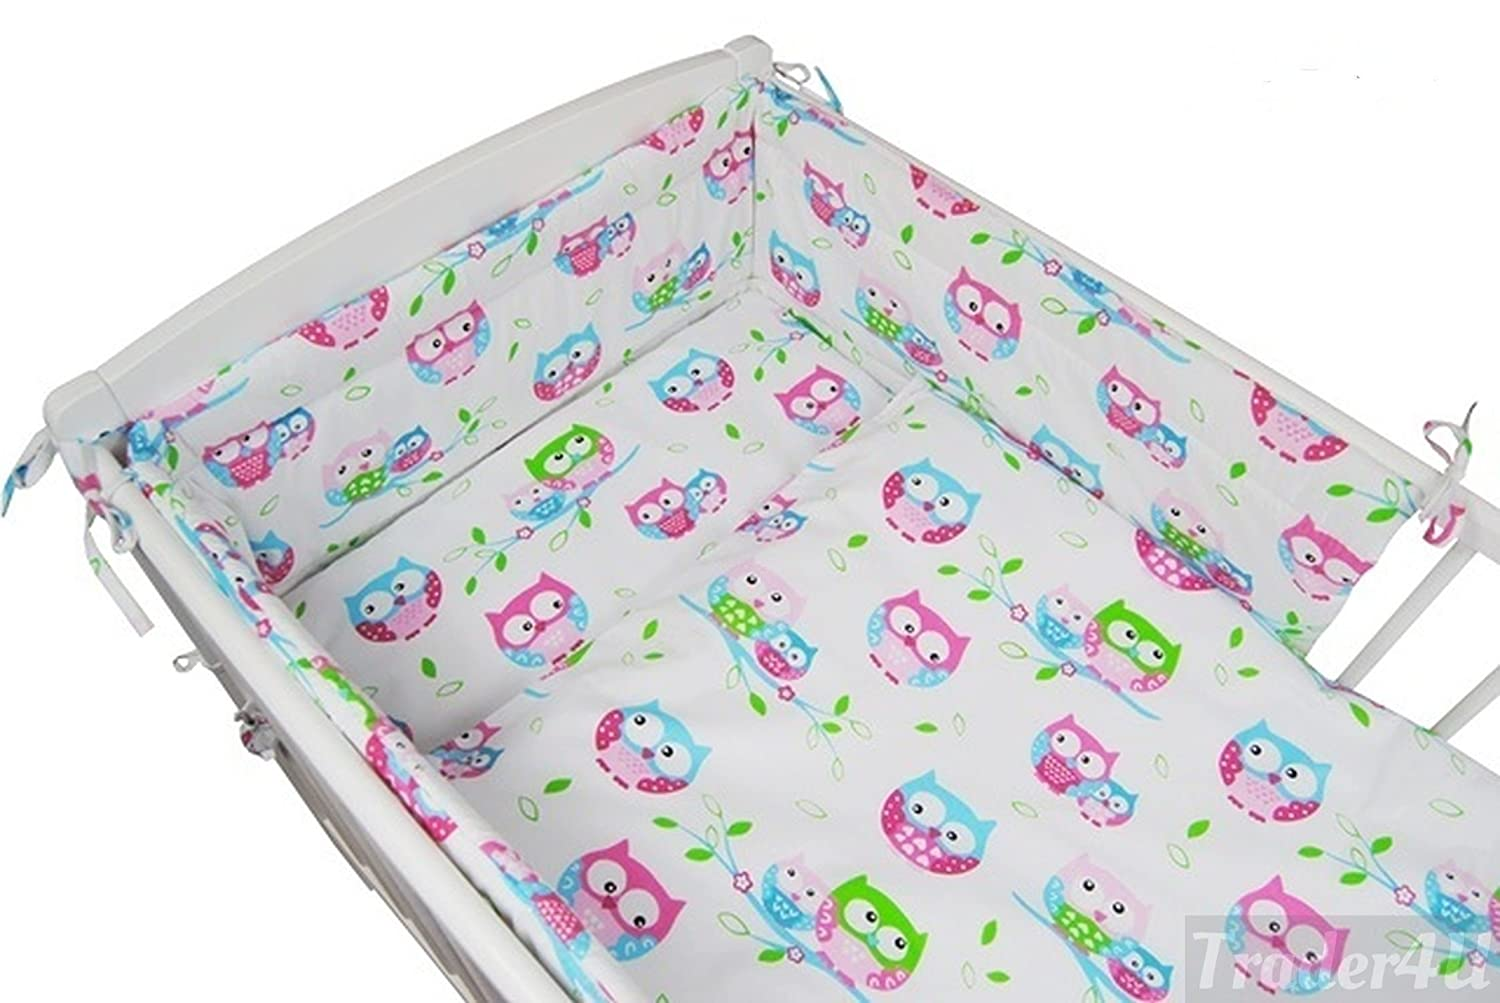 Fit to Cot 120x60 cm, White Dots on Grey MillaLu 3 Pcs Baby Nursery Bedding Set fit to Cot 120x60cm or Cot Bed 140x70cm Padded Bumper